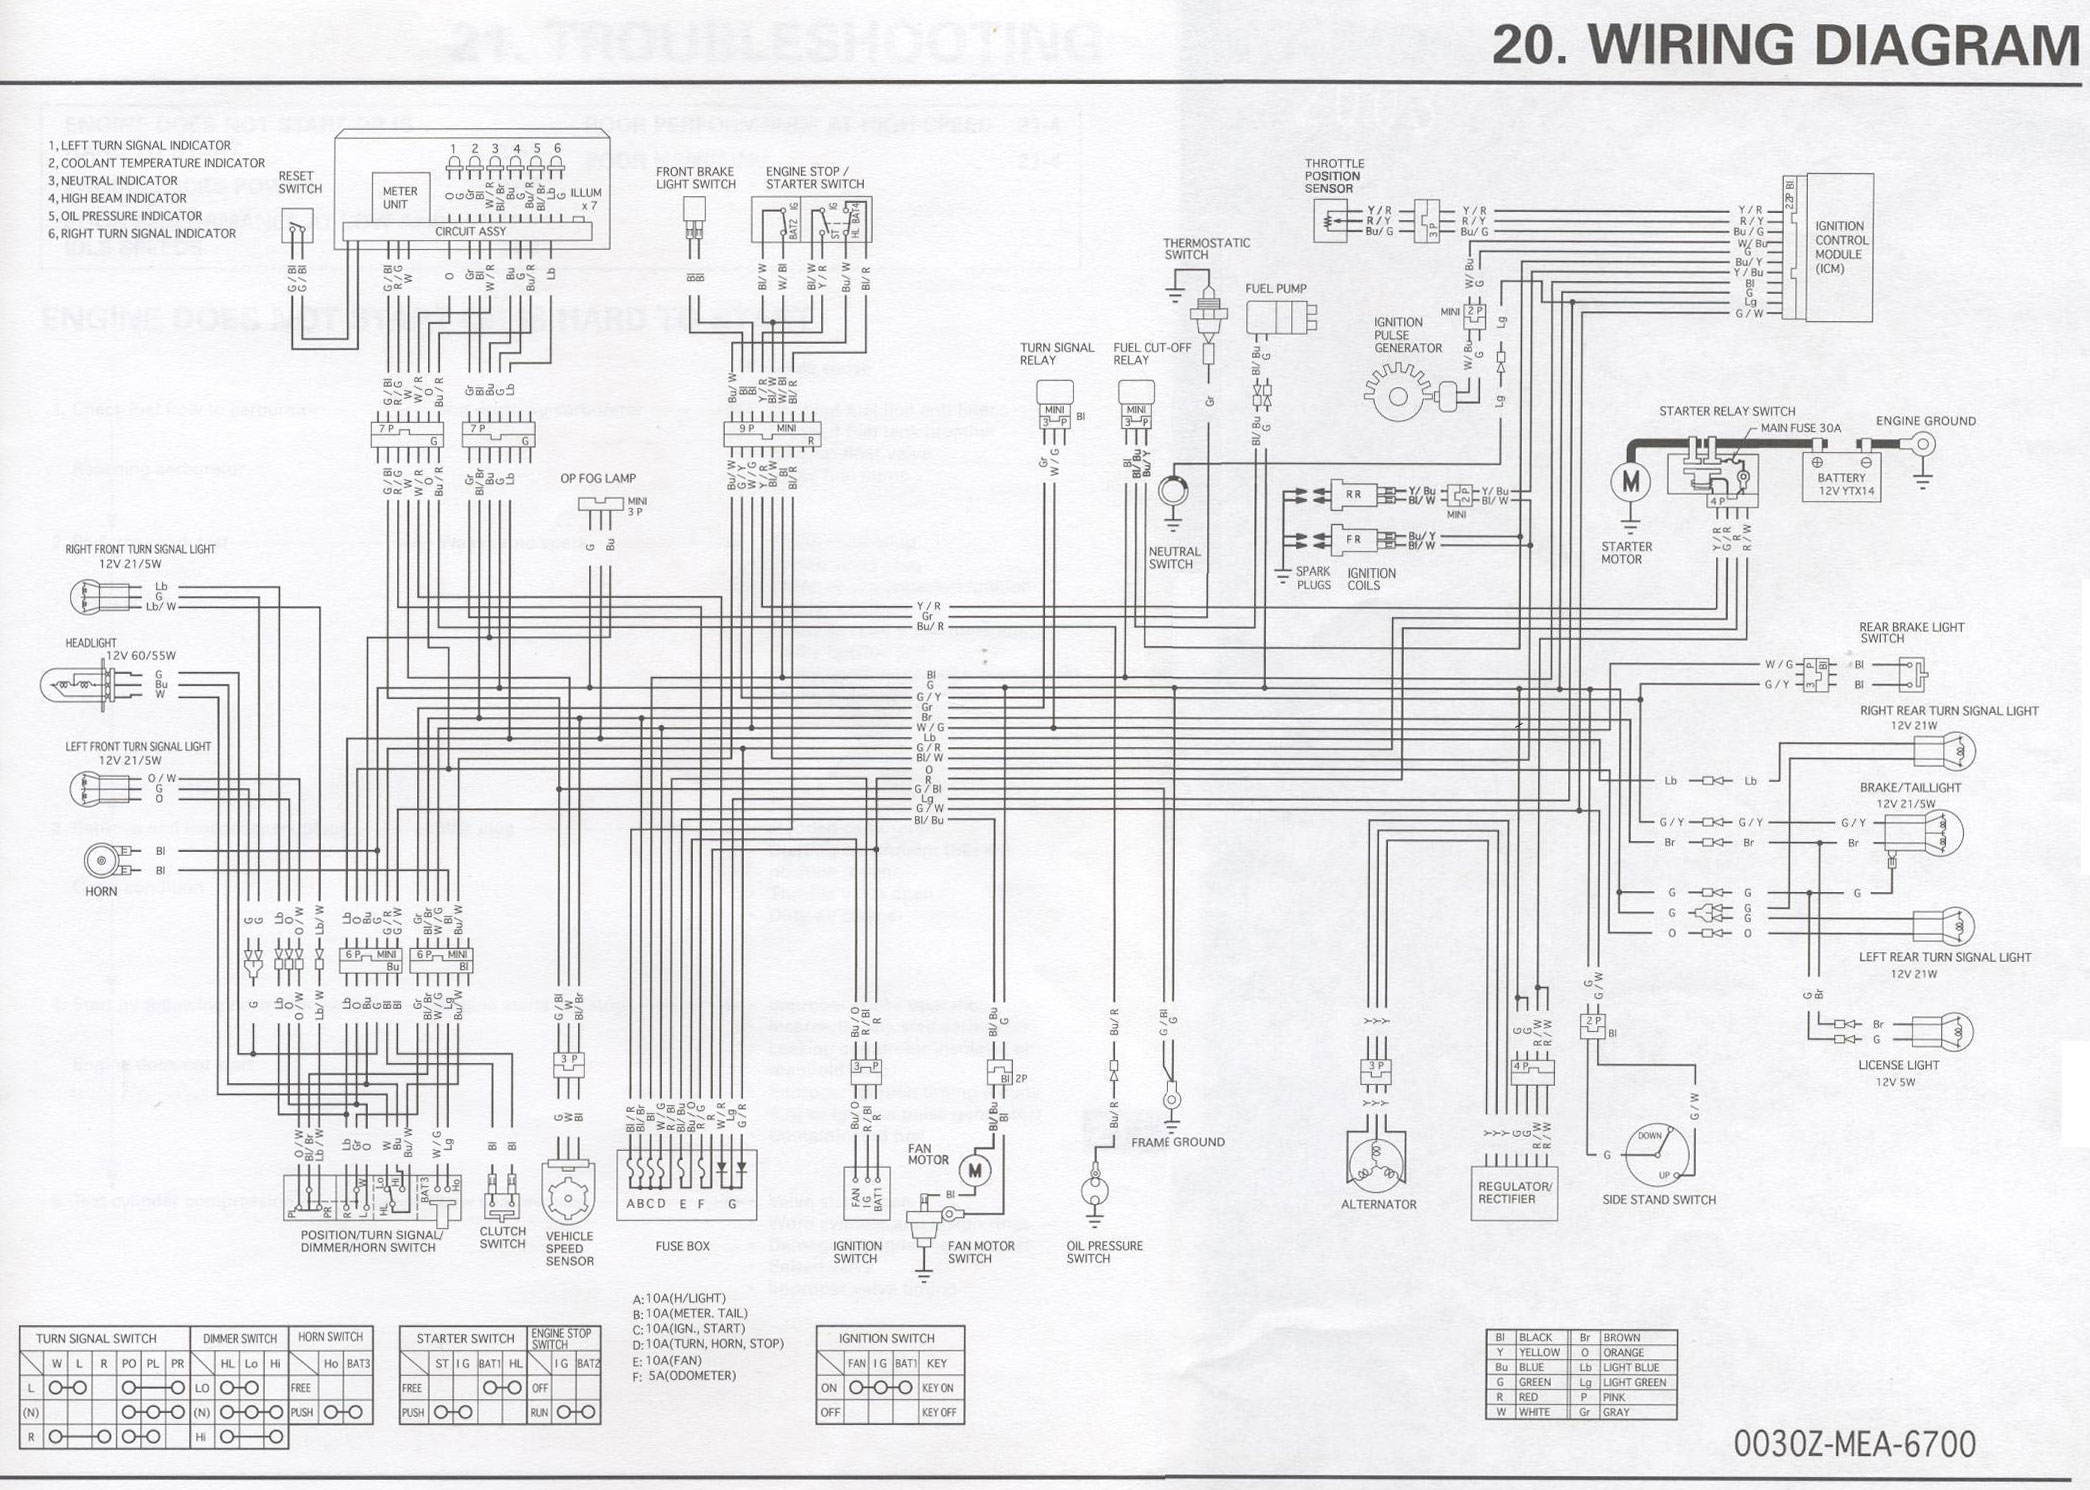 motorcycle wire schematics  u00ab bareass choppers motorcycle cb450 wiring diagram cb450 wiring diagram cb450 wiring diagram cb450 wiring diagram